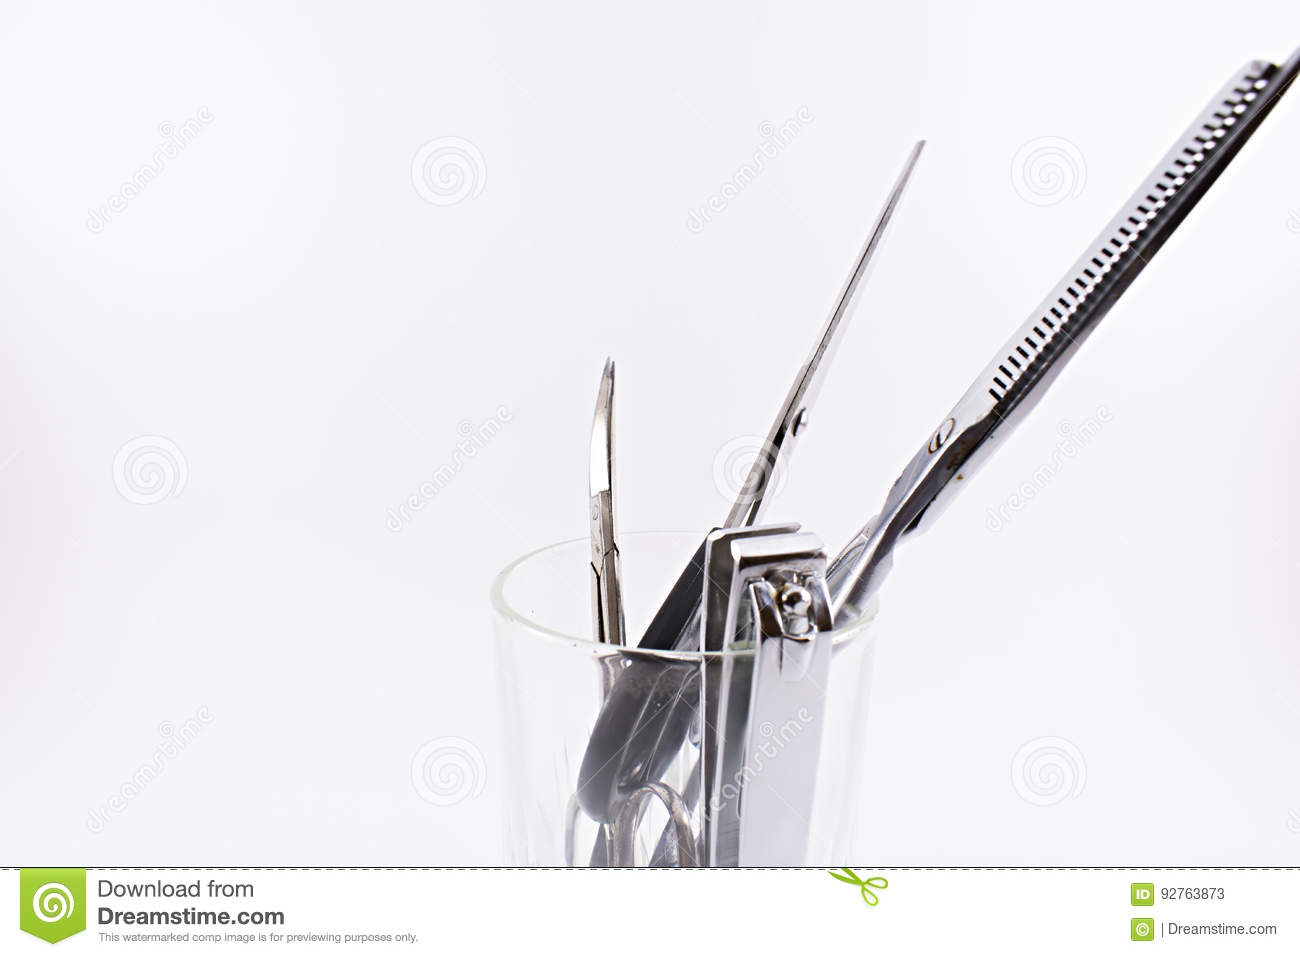 Scissors and nail clippers.